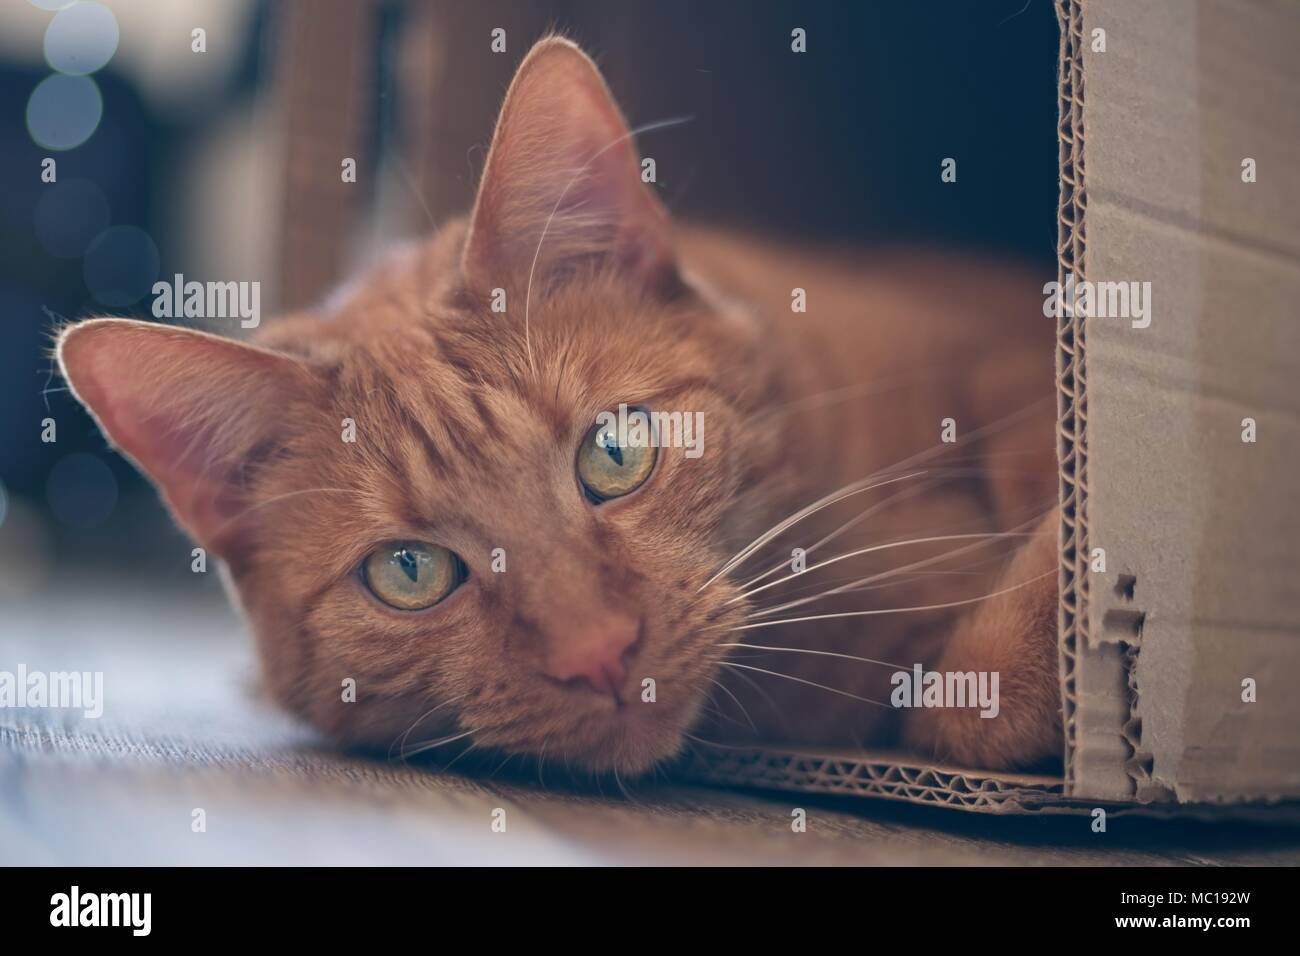 Ginger cat lying in a cardboard box and look to the camera. - Stock Image